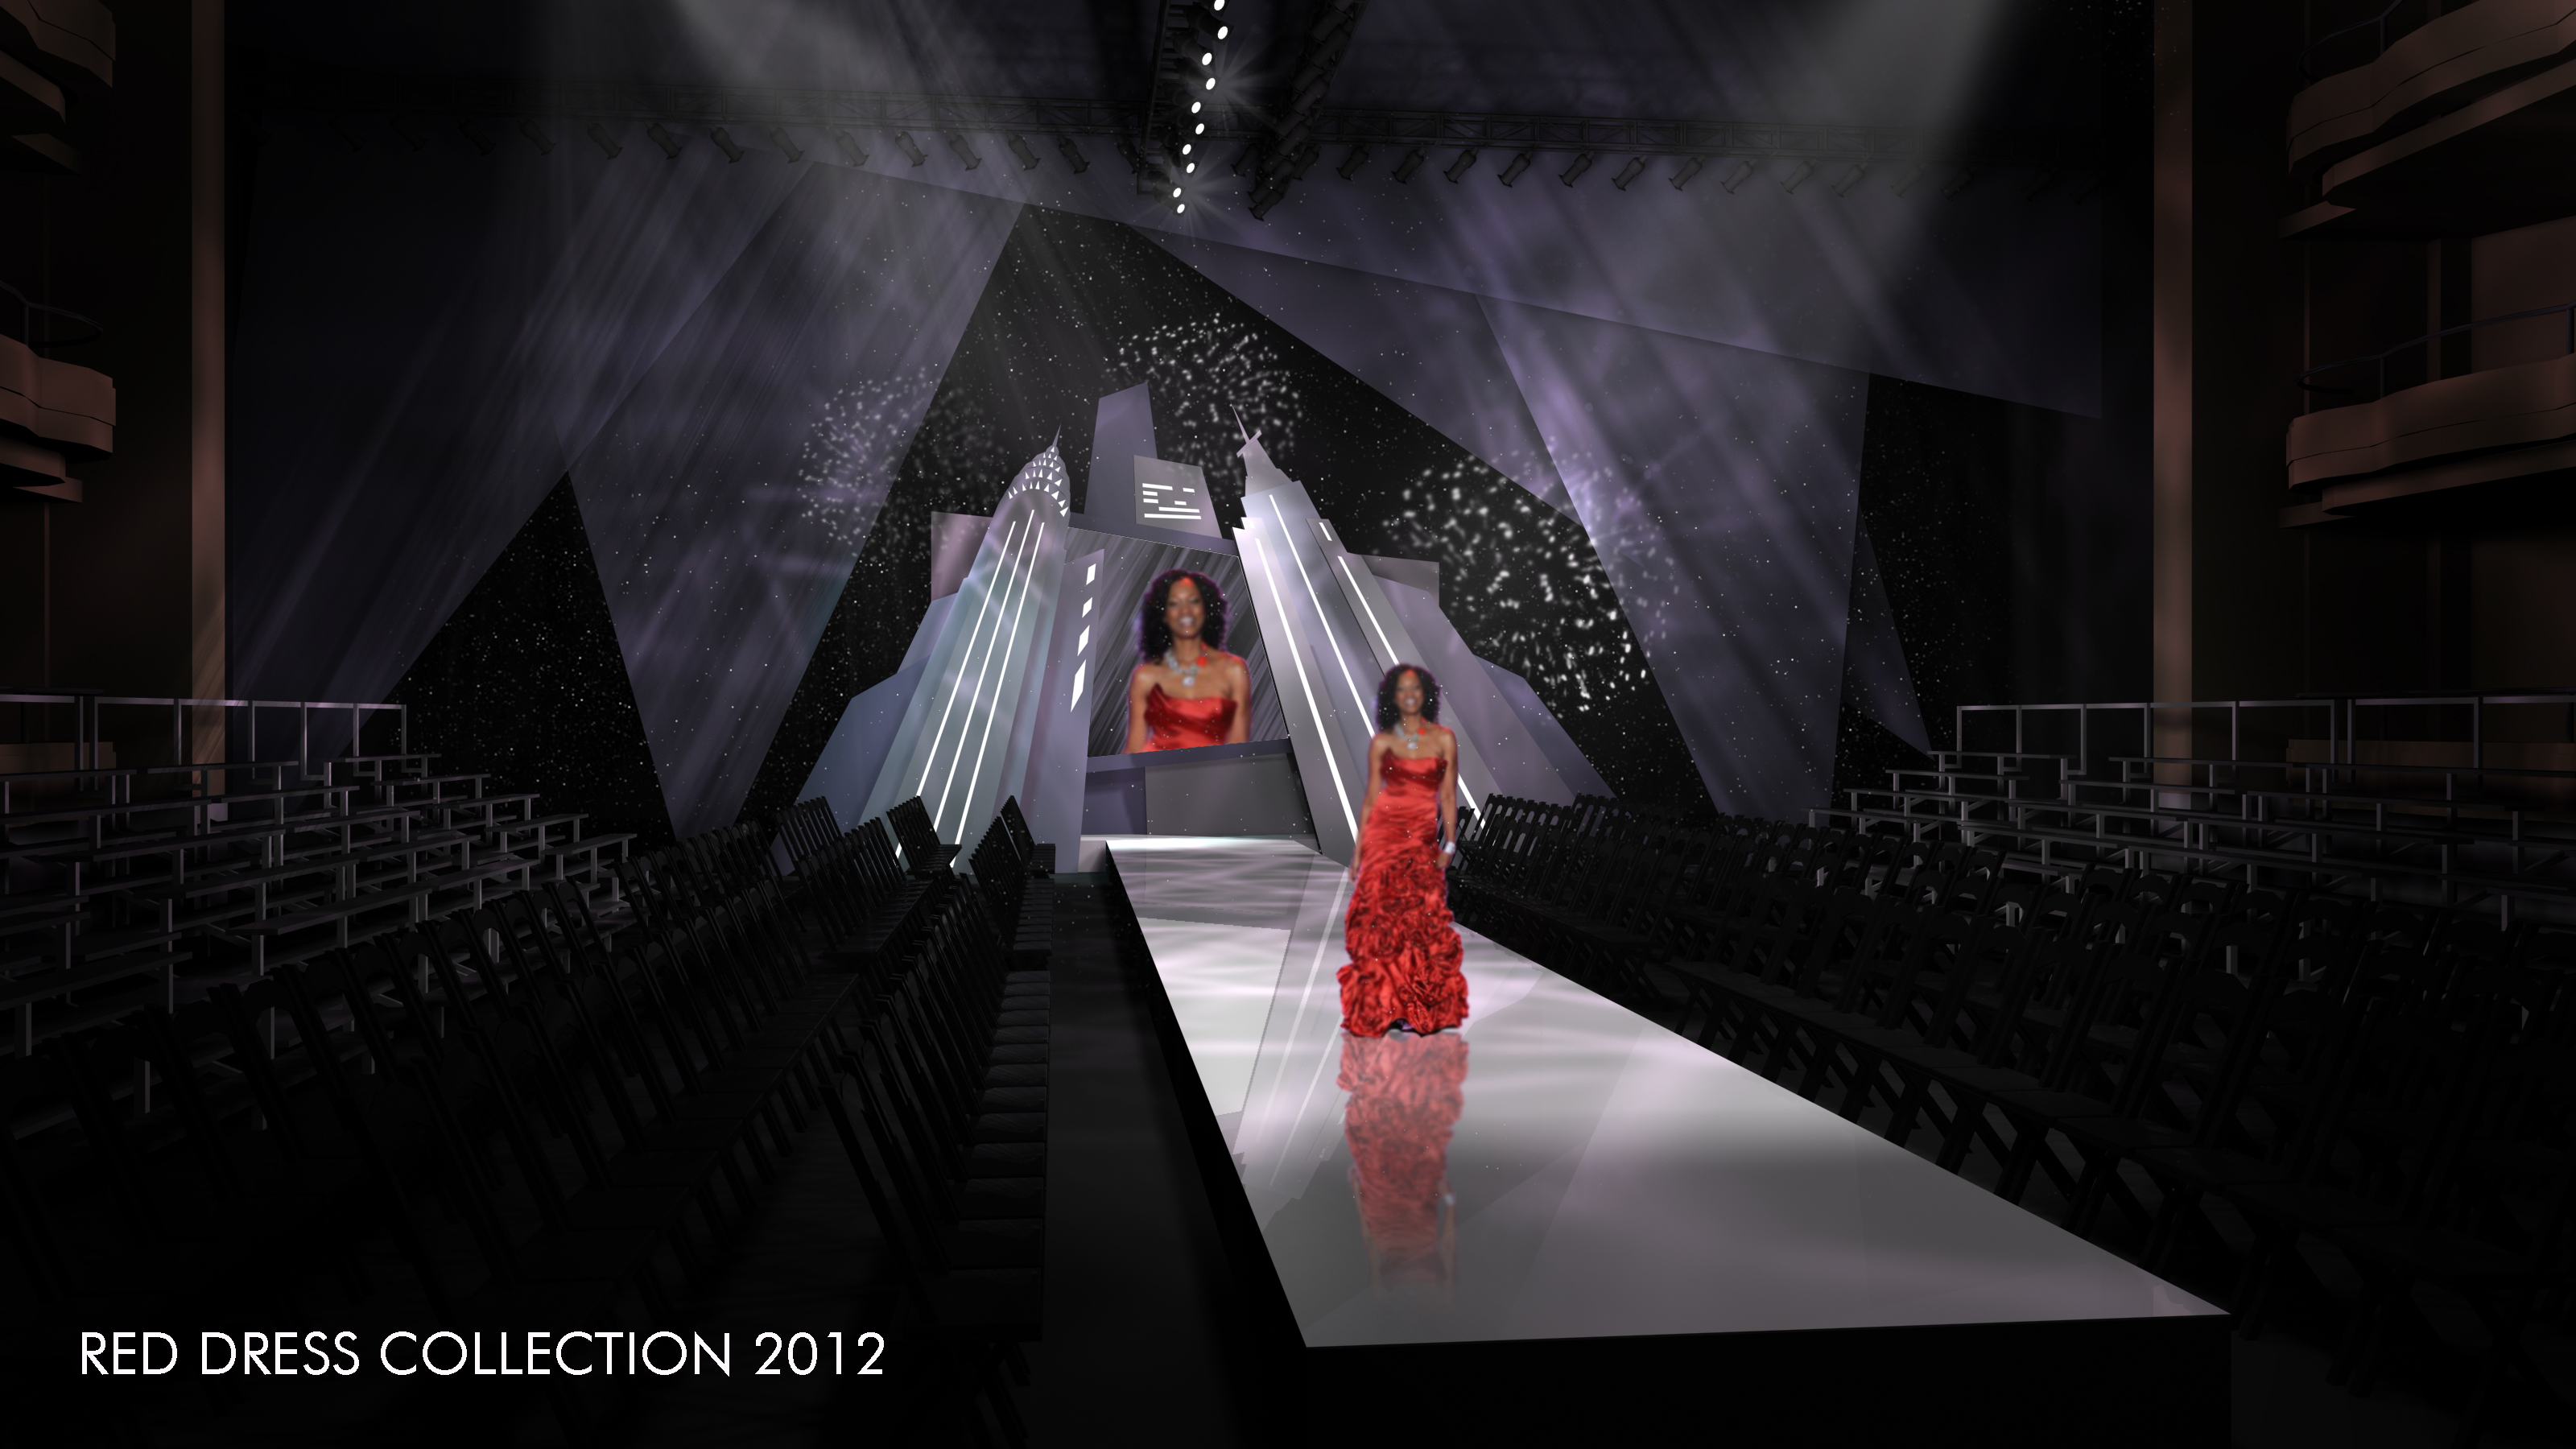 THE RED DRESS COLLECTION 2012